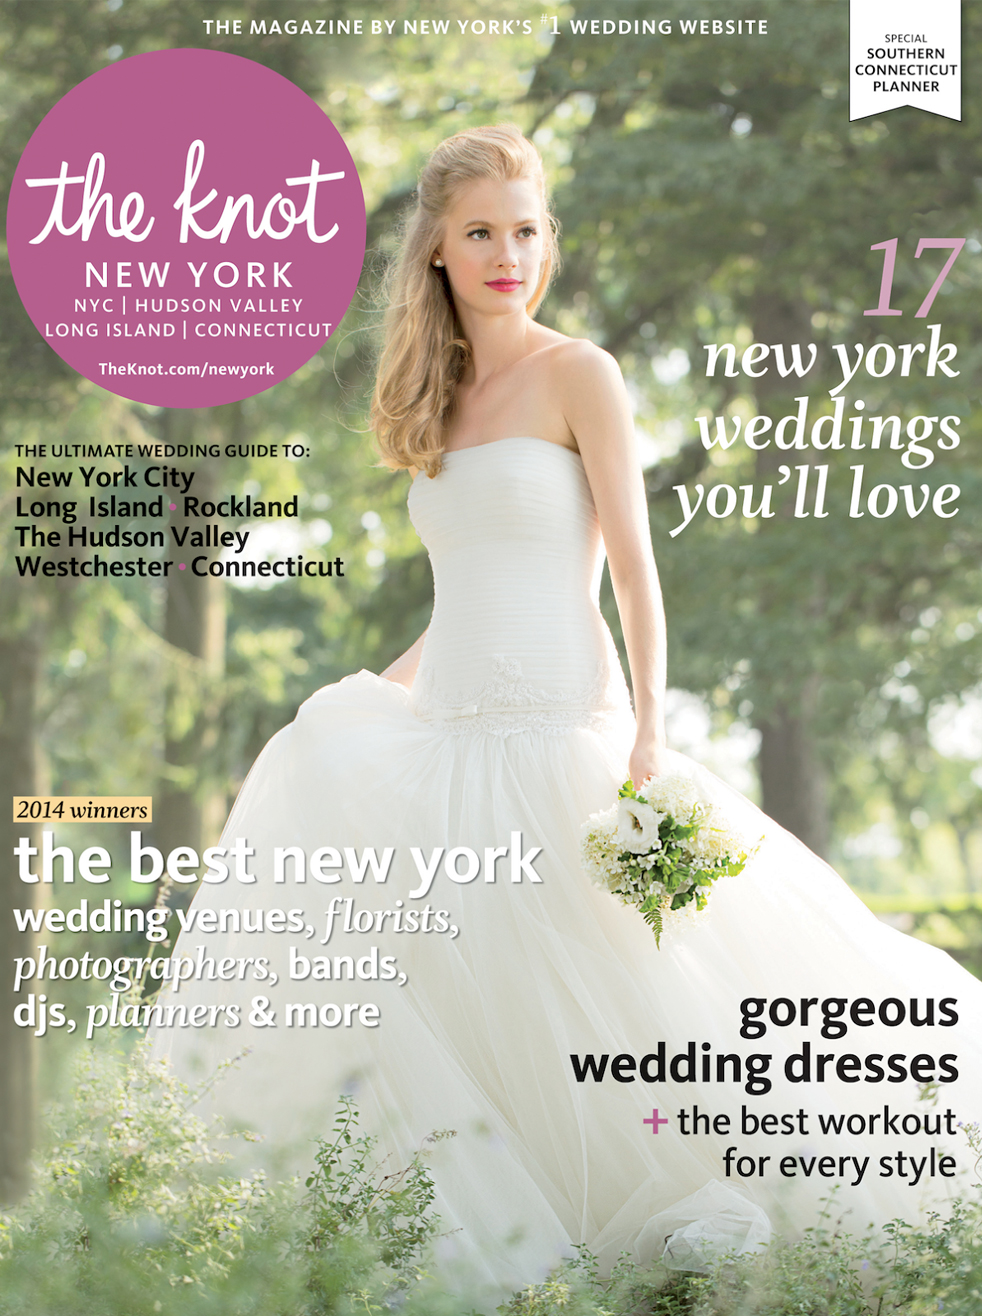 THE KNOT MAGAZINE<br>SPRING 2013